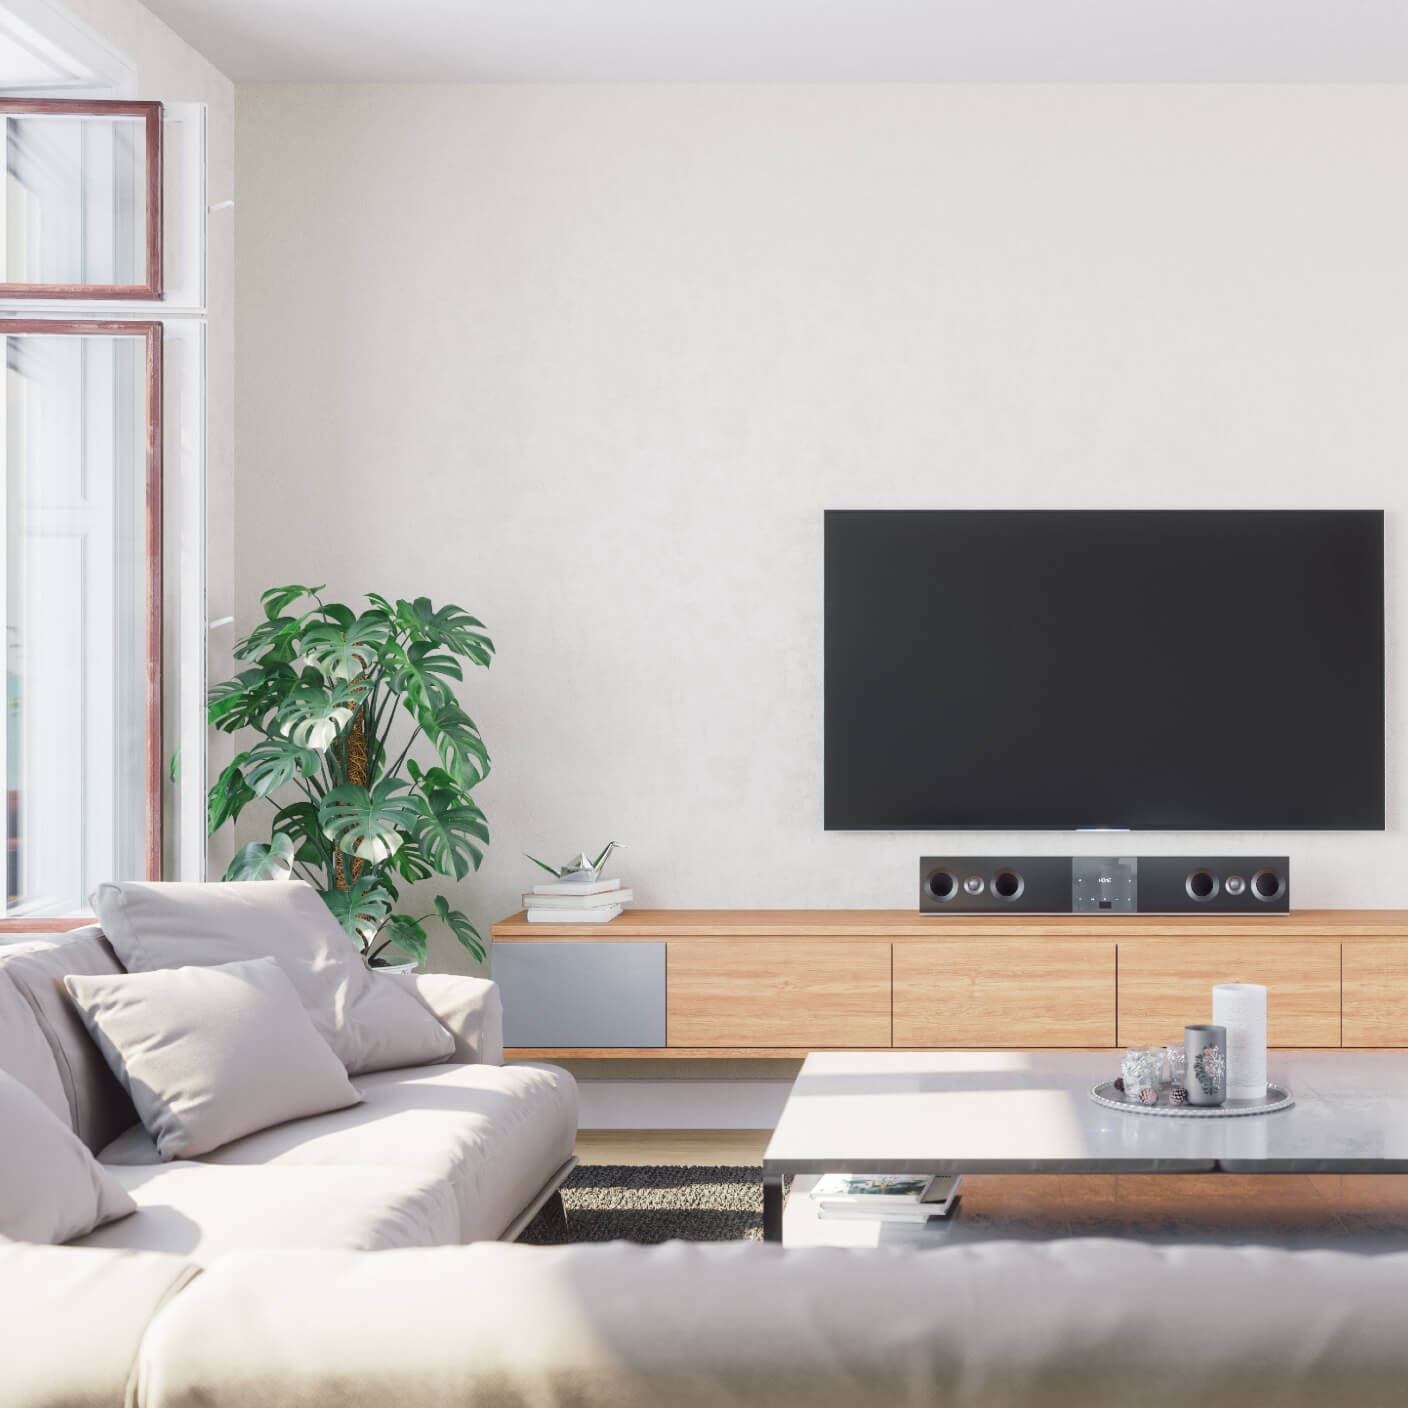 living room with a television and speaker set